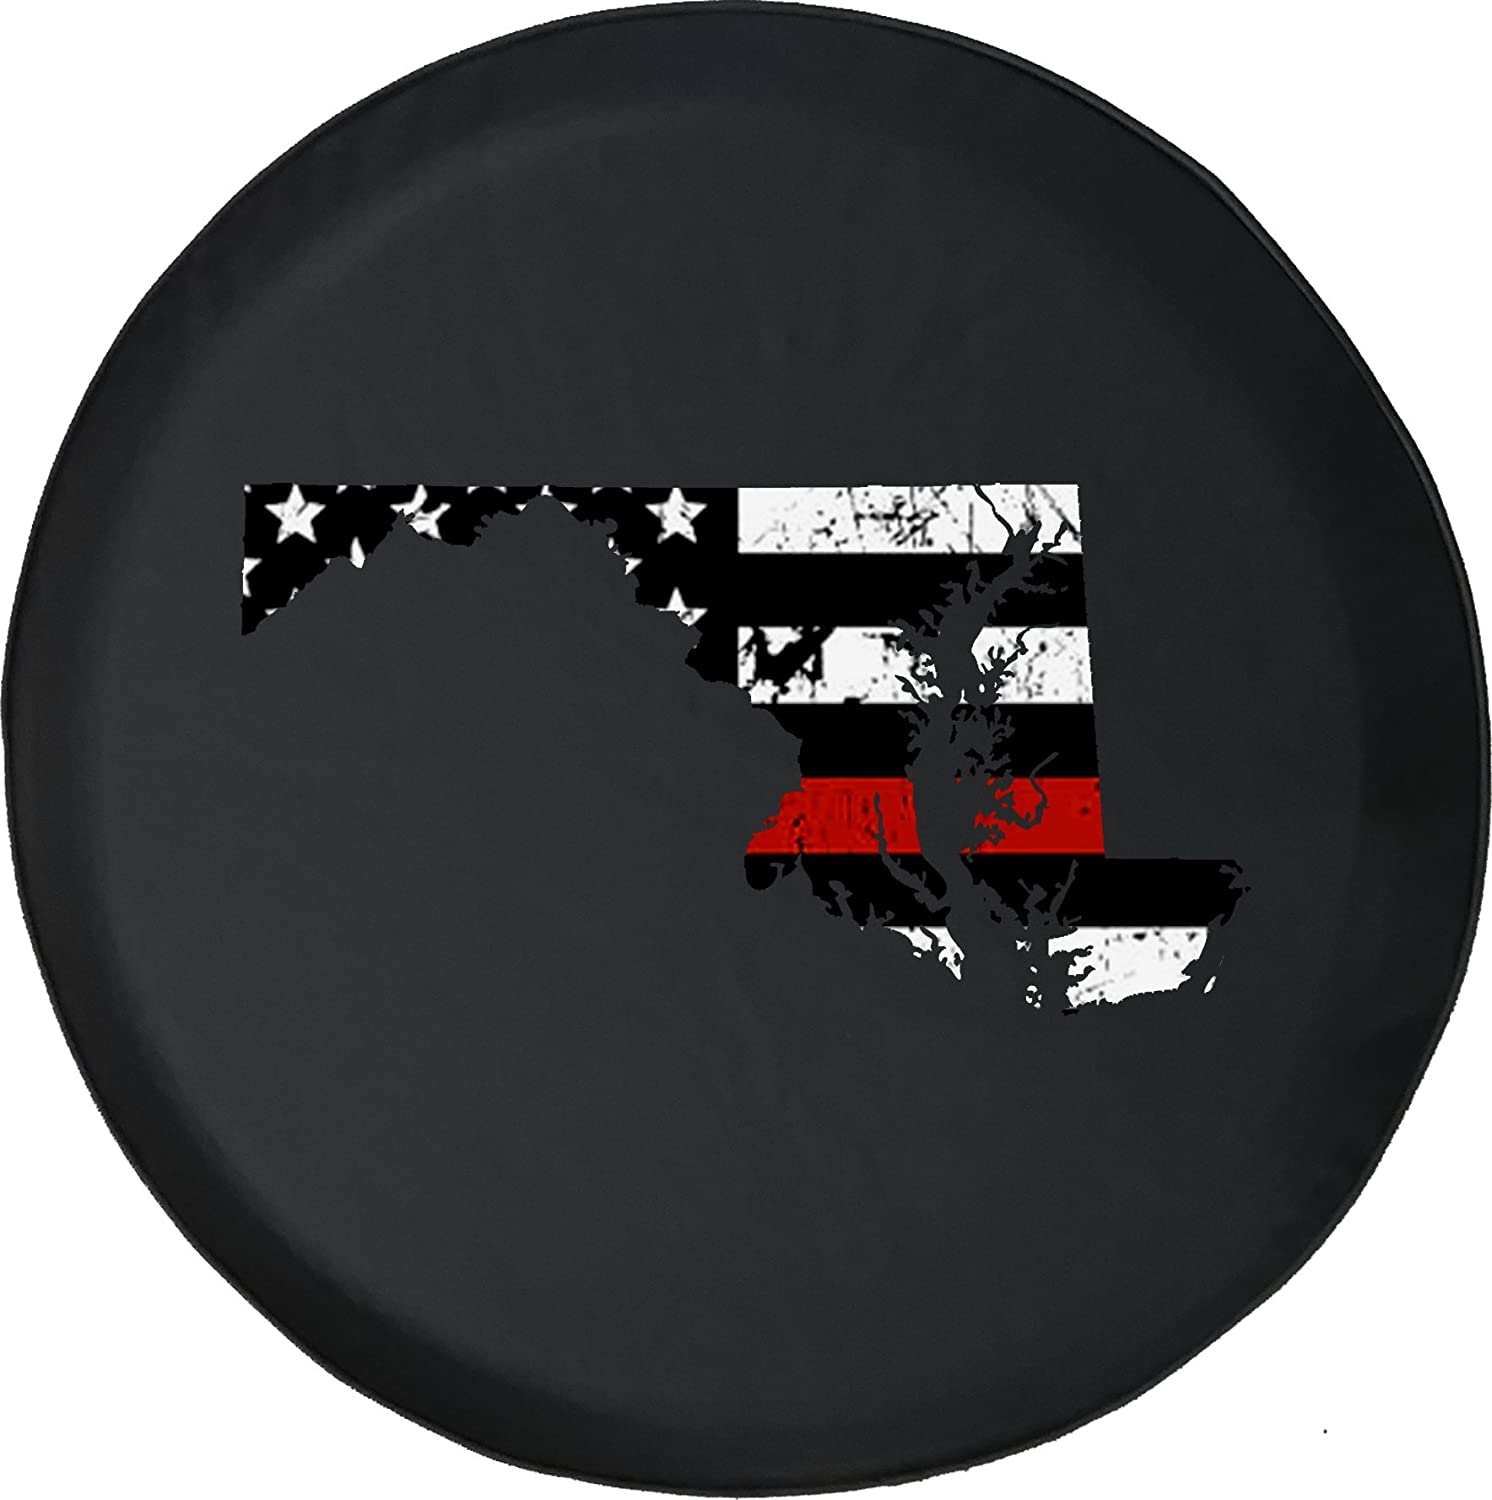 Max 54% OFF Caps Supply Spare Tire Cover Maryland Red Dealing full price reduction -Thin Distressed Line